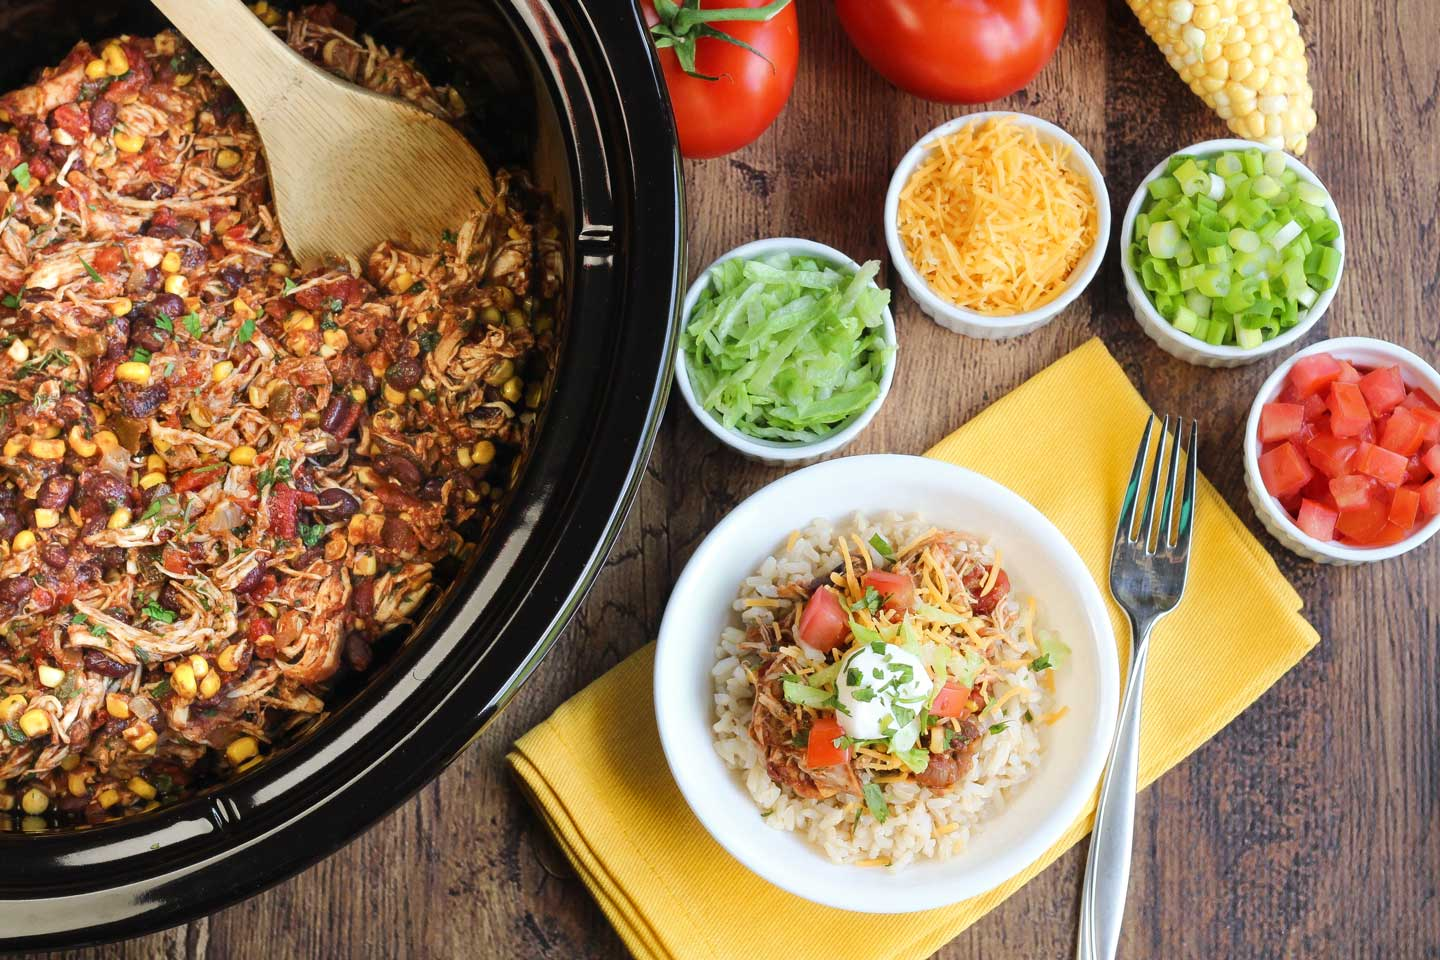 Finished recipe set out on table with full slow cooker, fresh vegetable toppings, and chicken in a bowl.